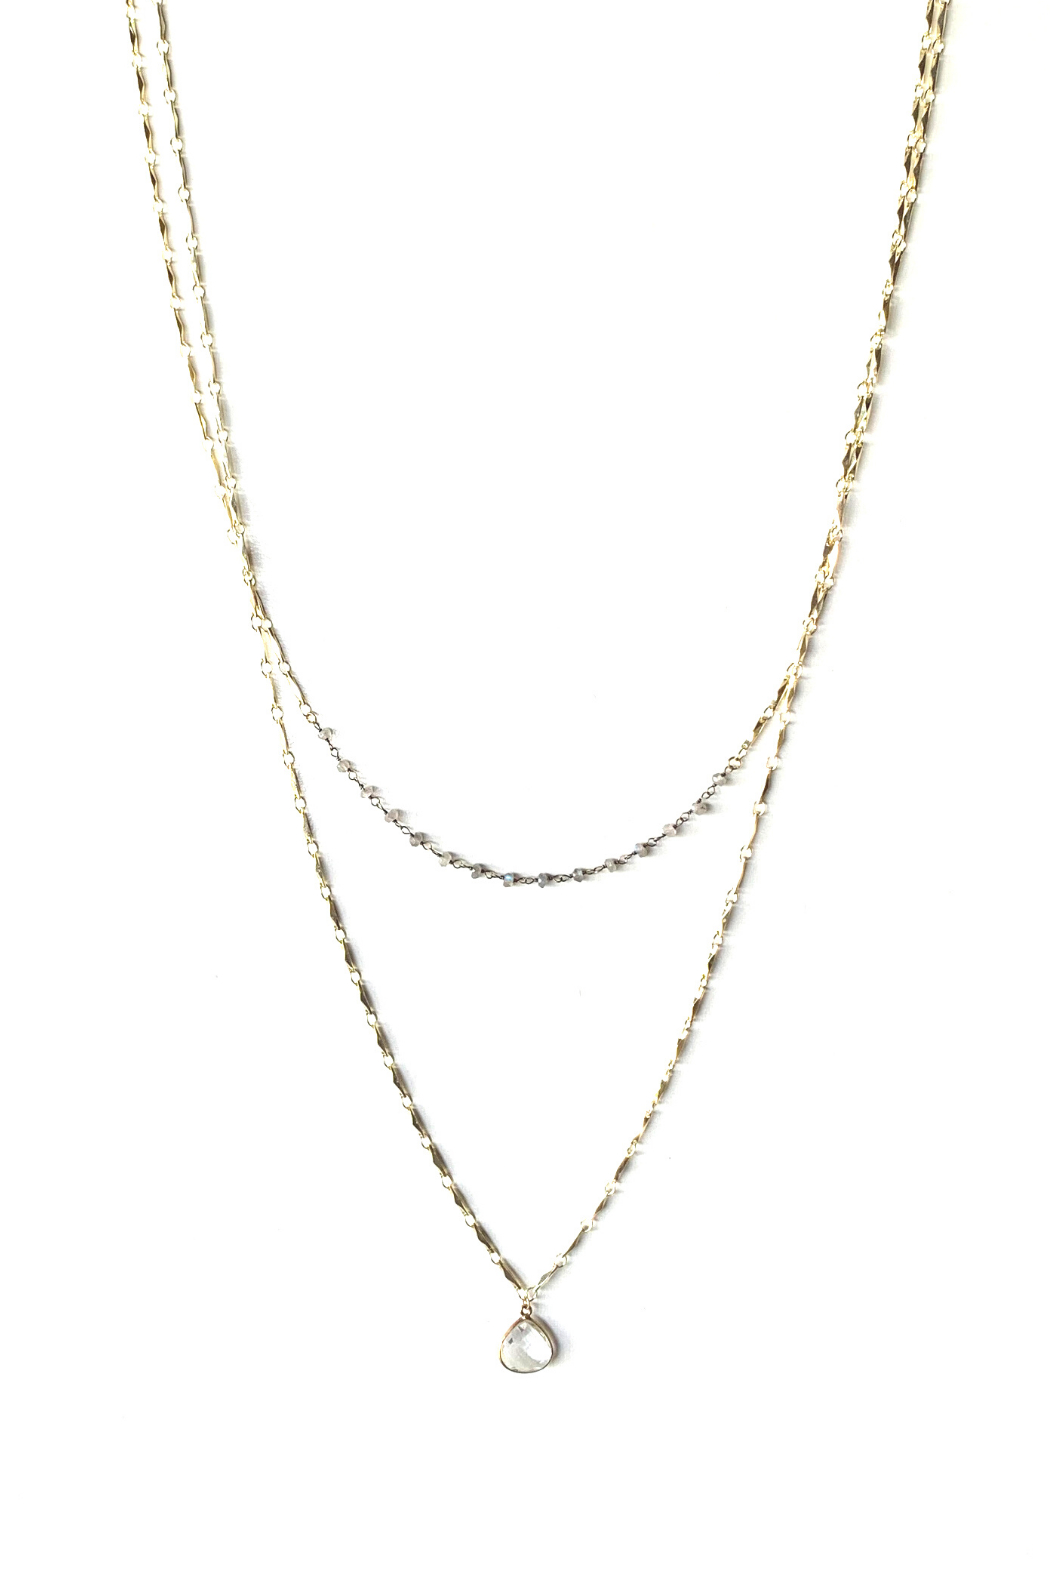 Midori Marna Double Tiered Necklace - Main Image